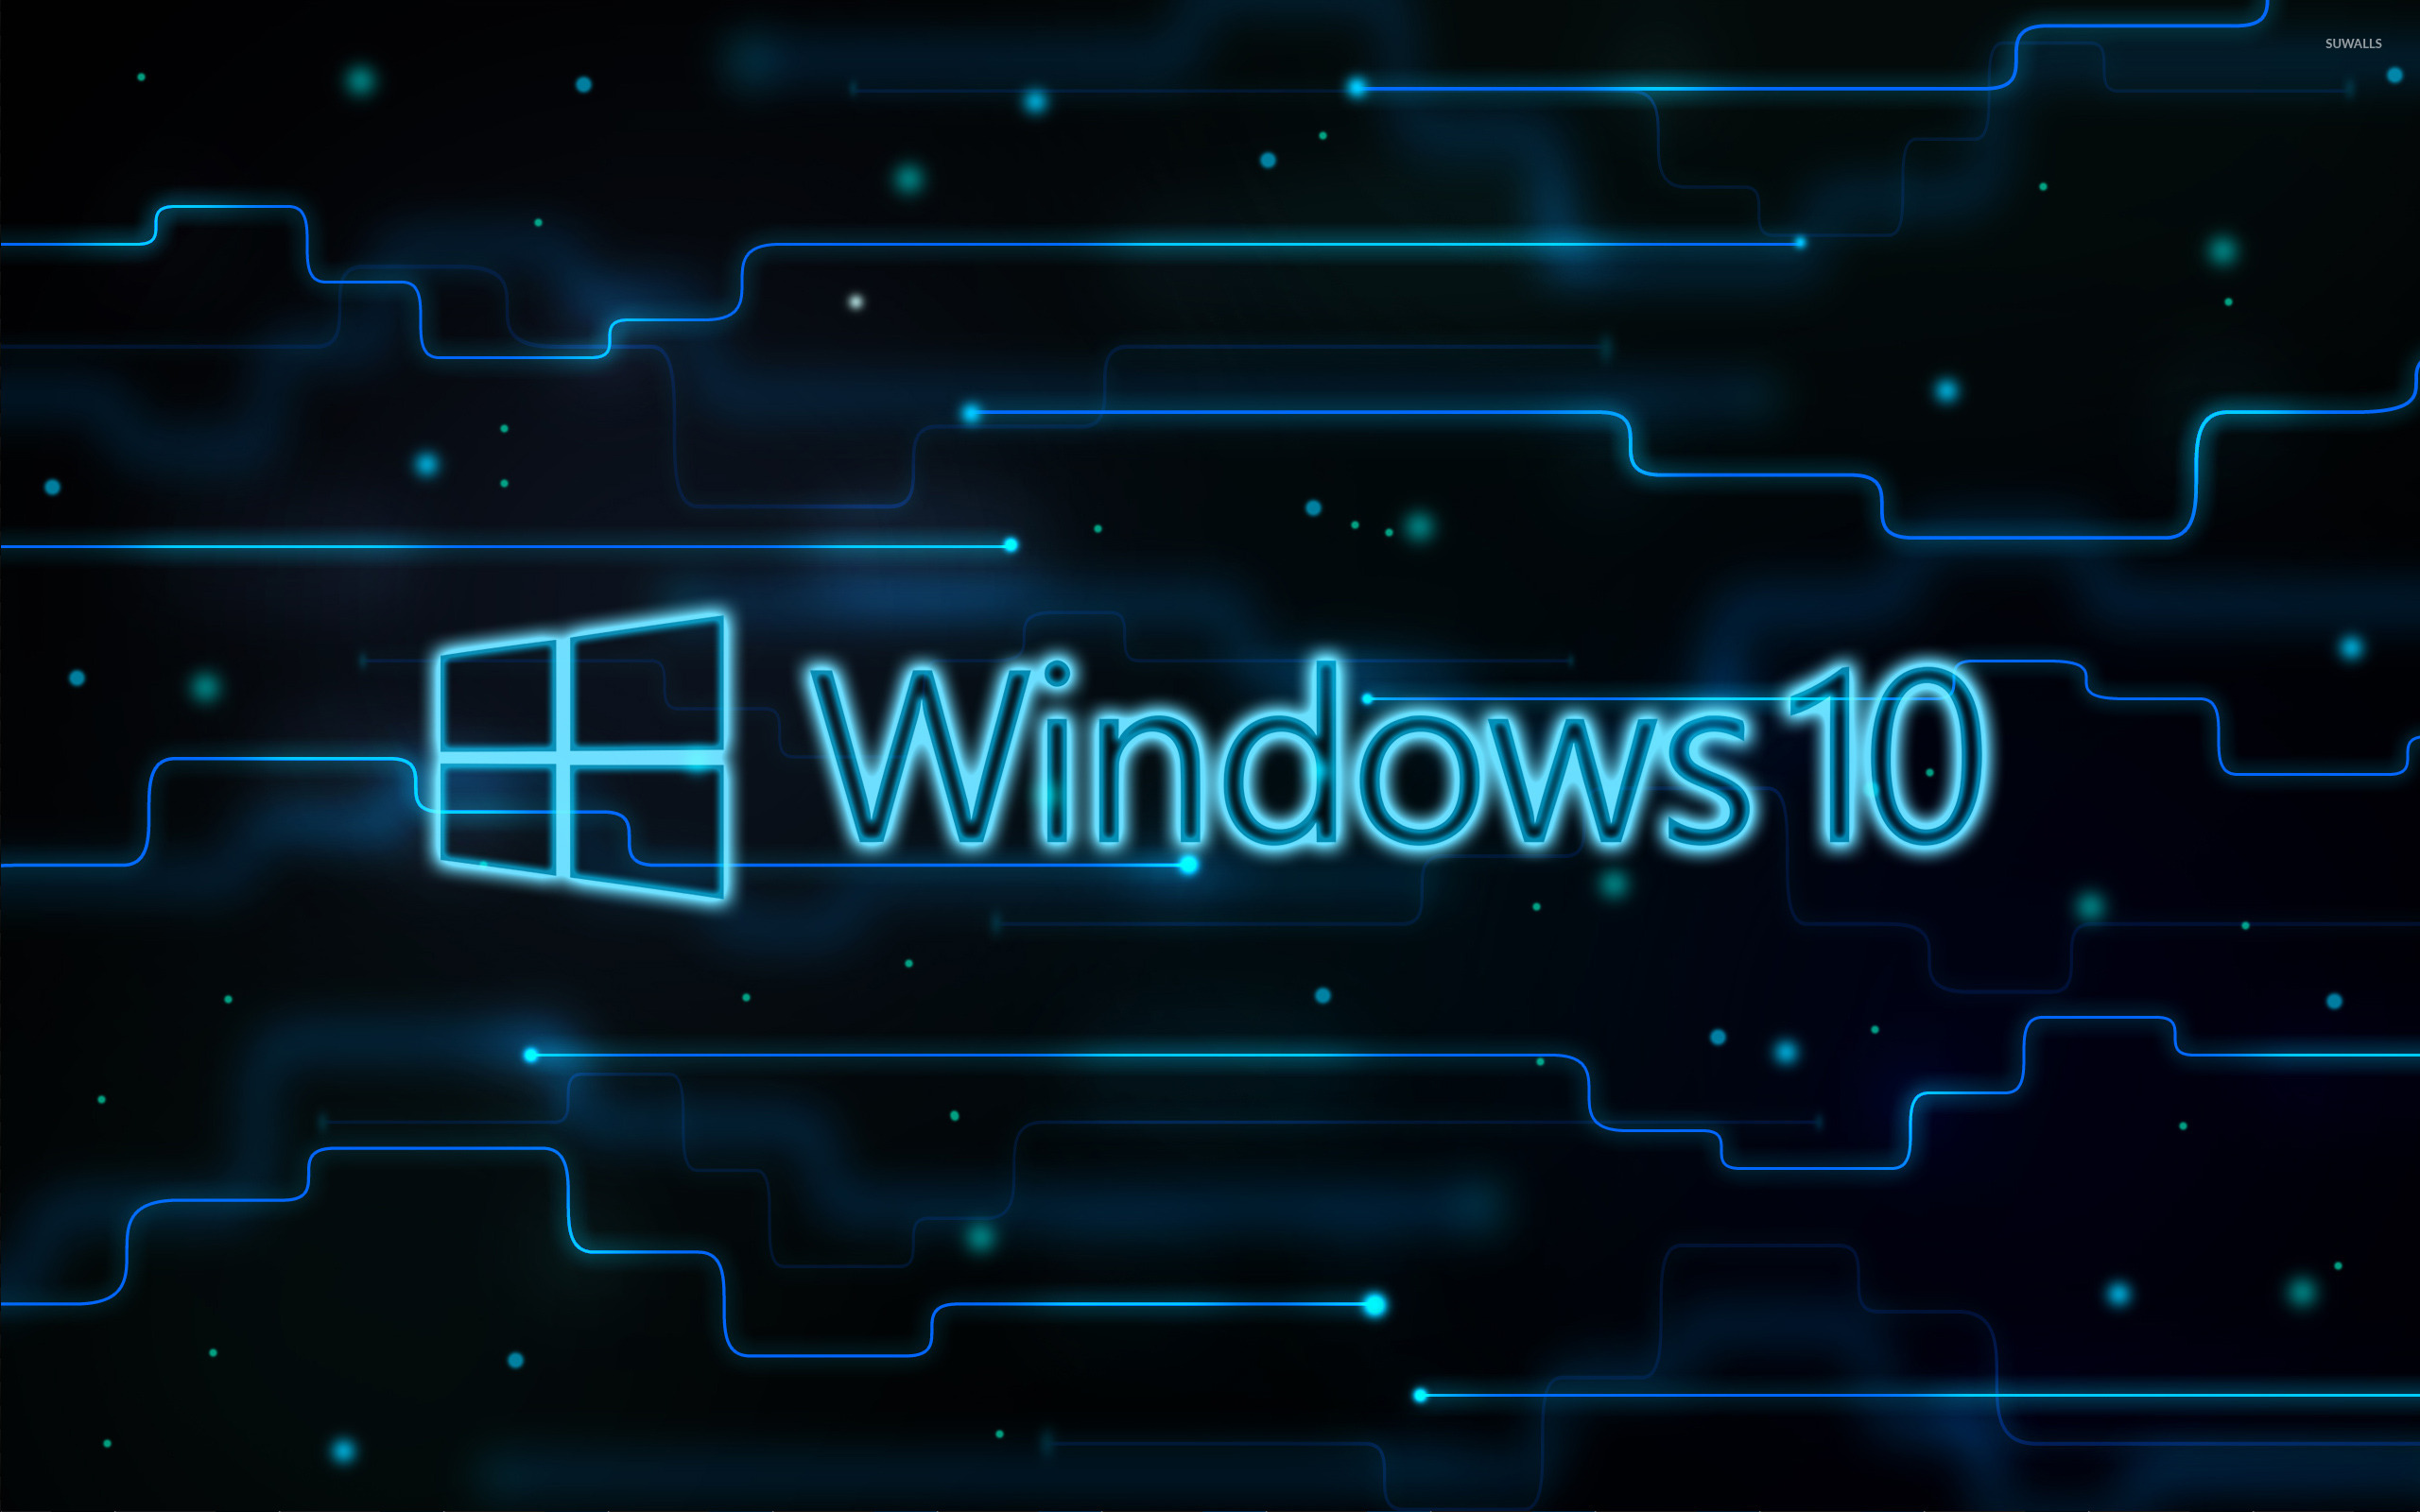 windows 10 glowing logo on a network wallpaper